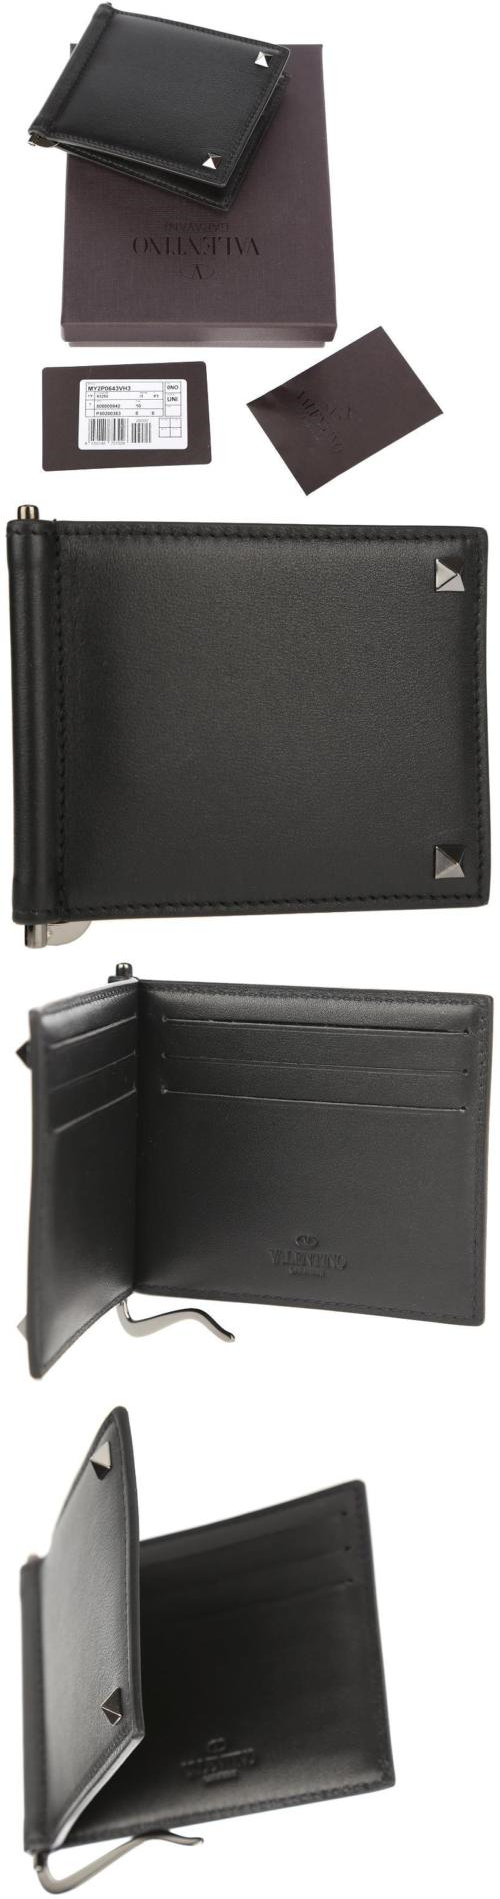 36dfca93eff54 Business and Credit Card Cases 105860: New Valentino Garavani Men S  Rockstud Money Clip Cc Id Case Bifold Wallet -> BUY IT NOW ONLY: $262.49 on  eBay!